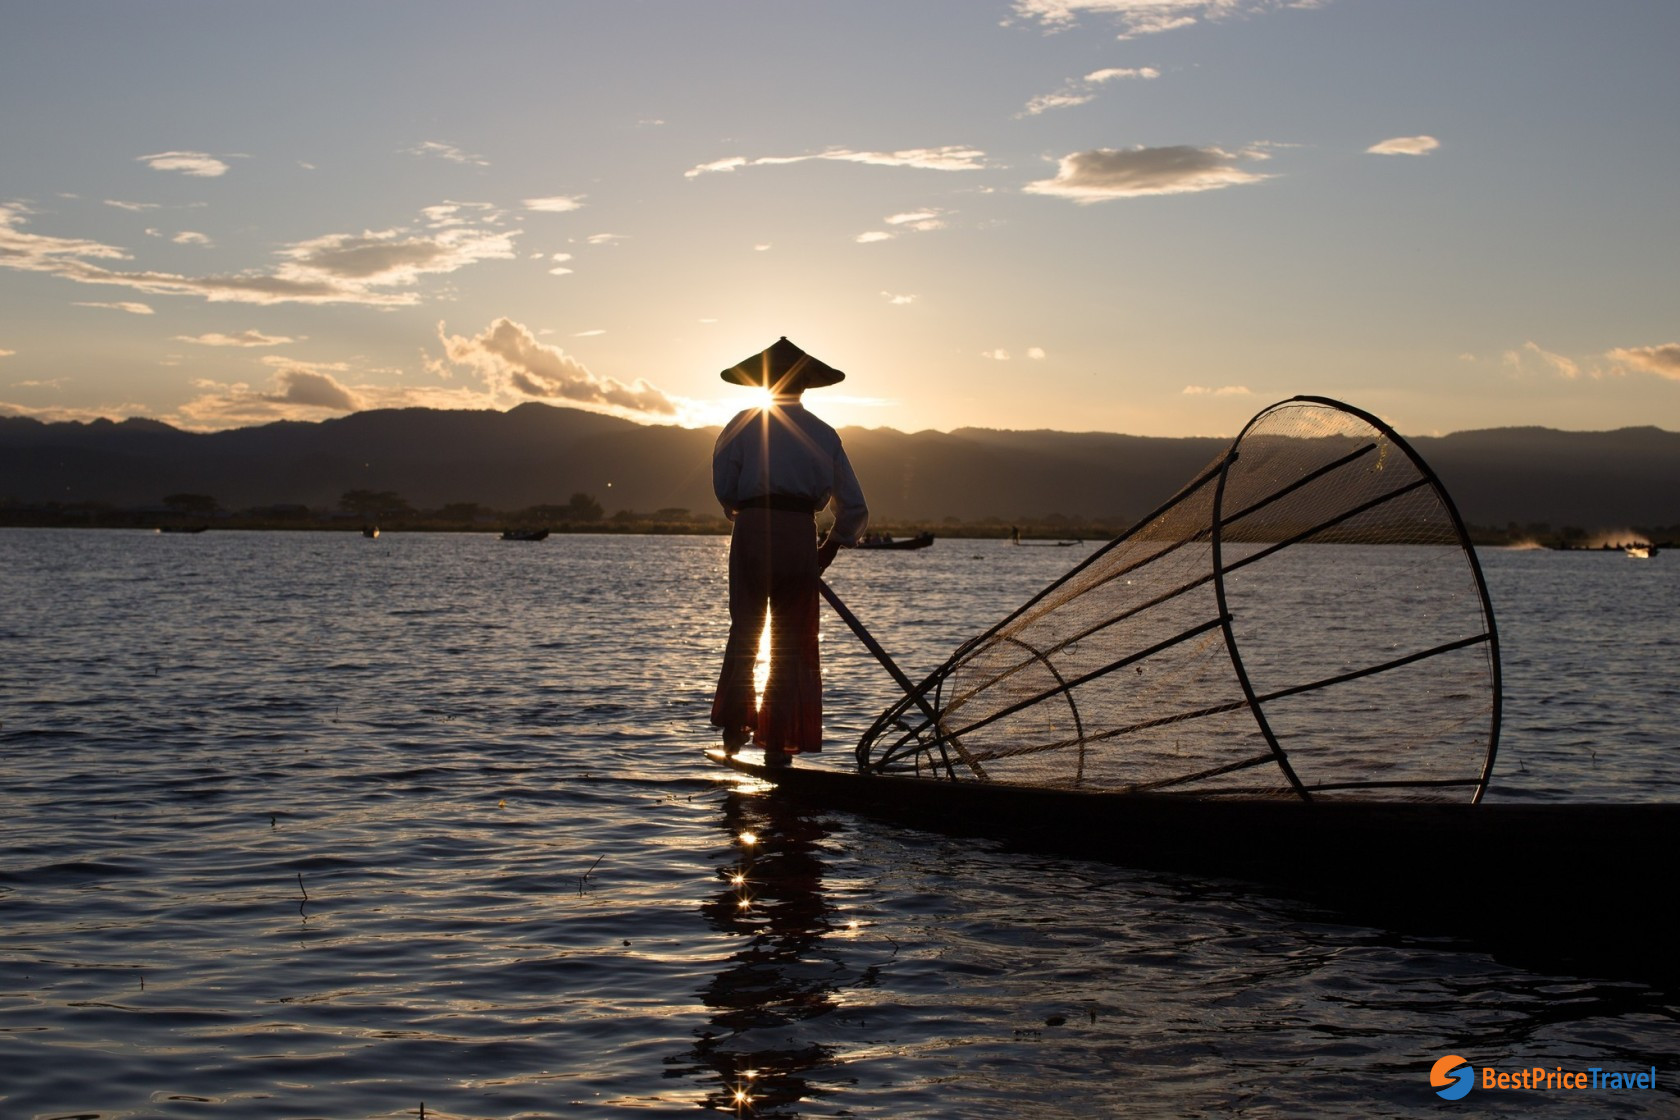 Inle Lake is a must-visit destination in Myanmar